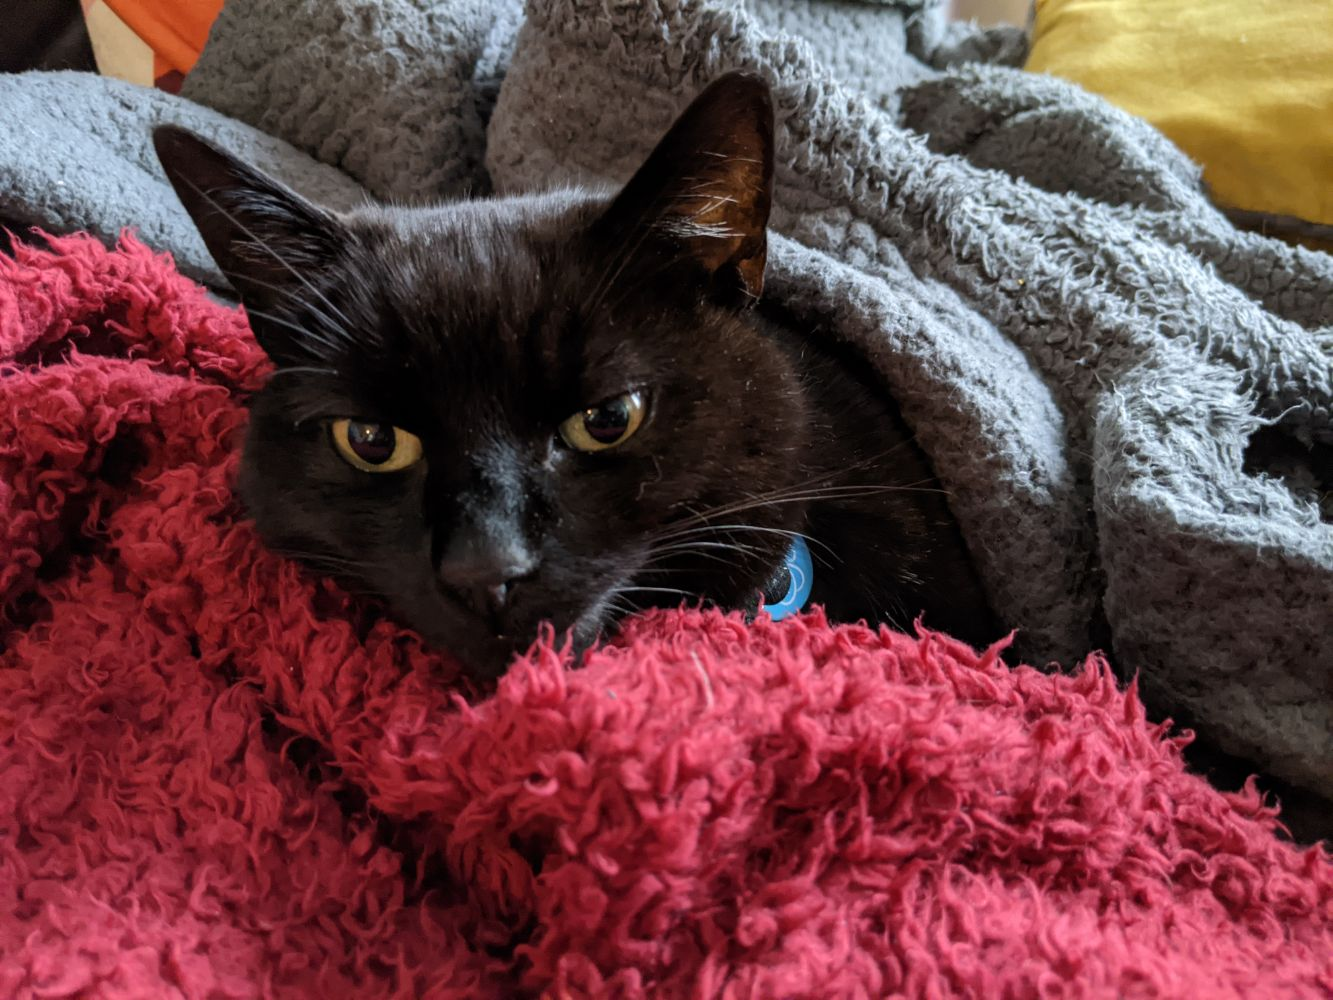 Black cat lying on a red blanket, wrapped up in a grey blanket, looking at the camera with big, cute eyes